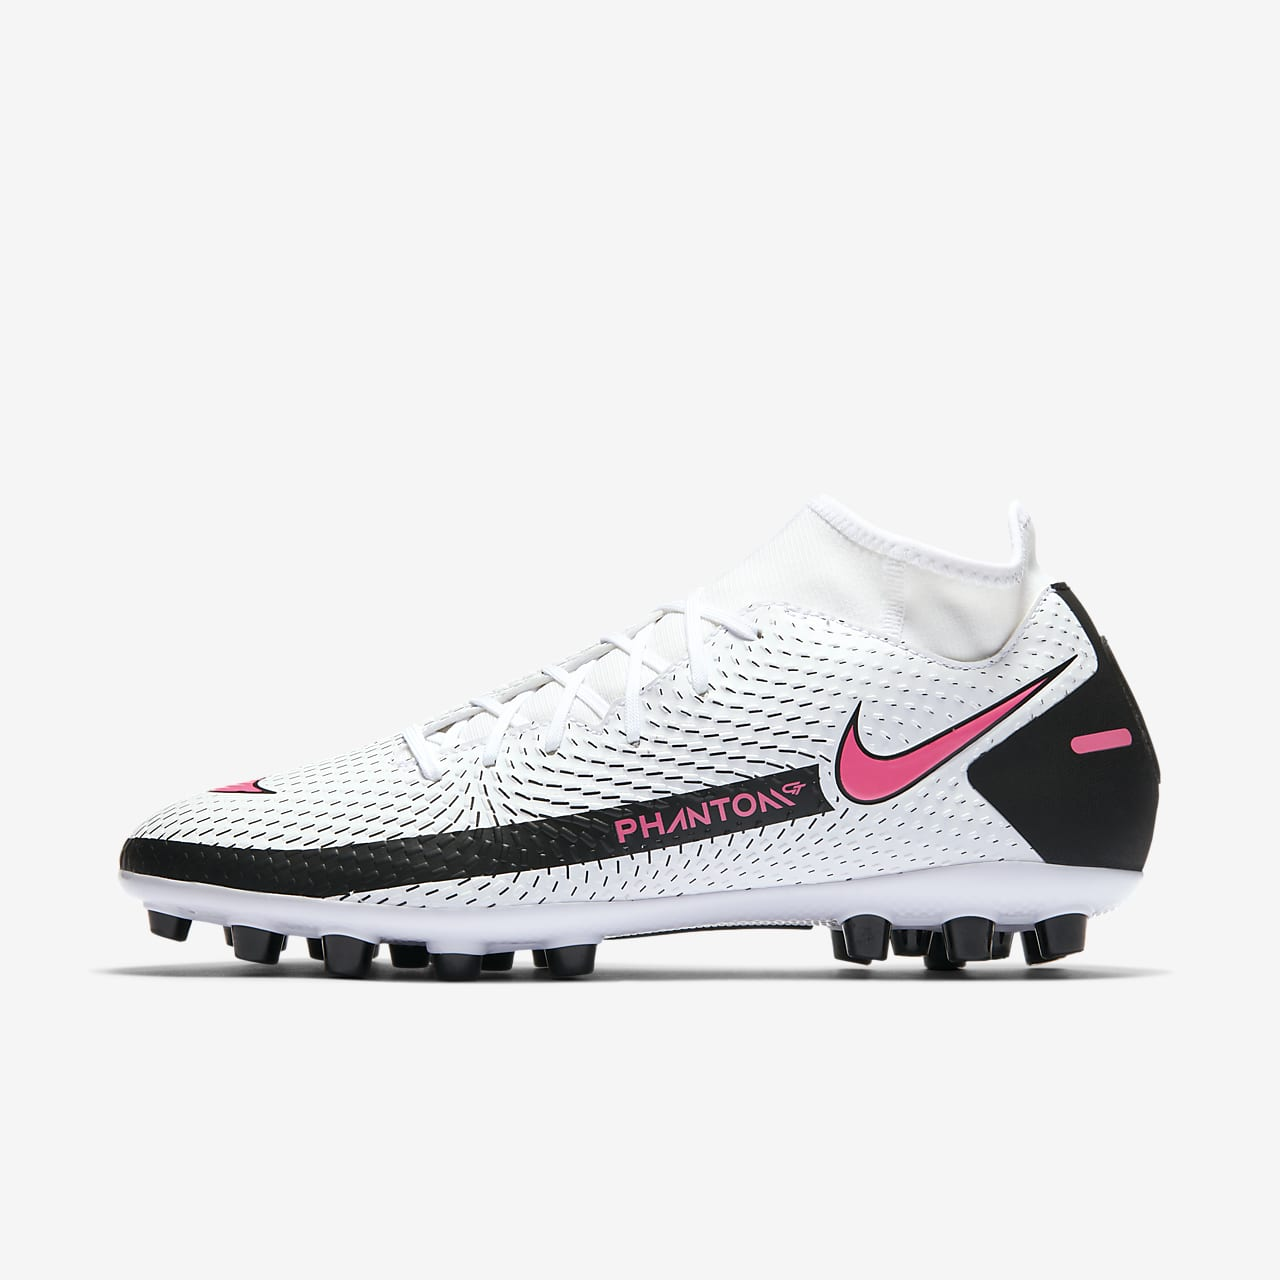 Nike Phantom GT Academy Dynamic Fit AG Artificial-Grass Football Boot